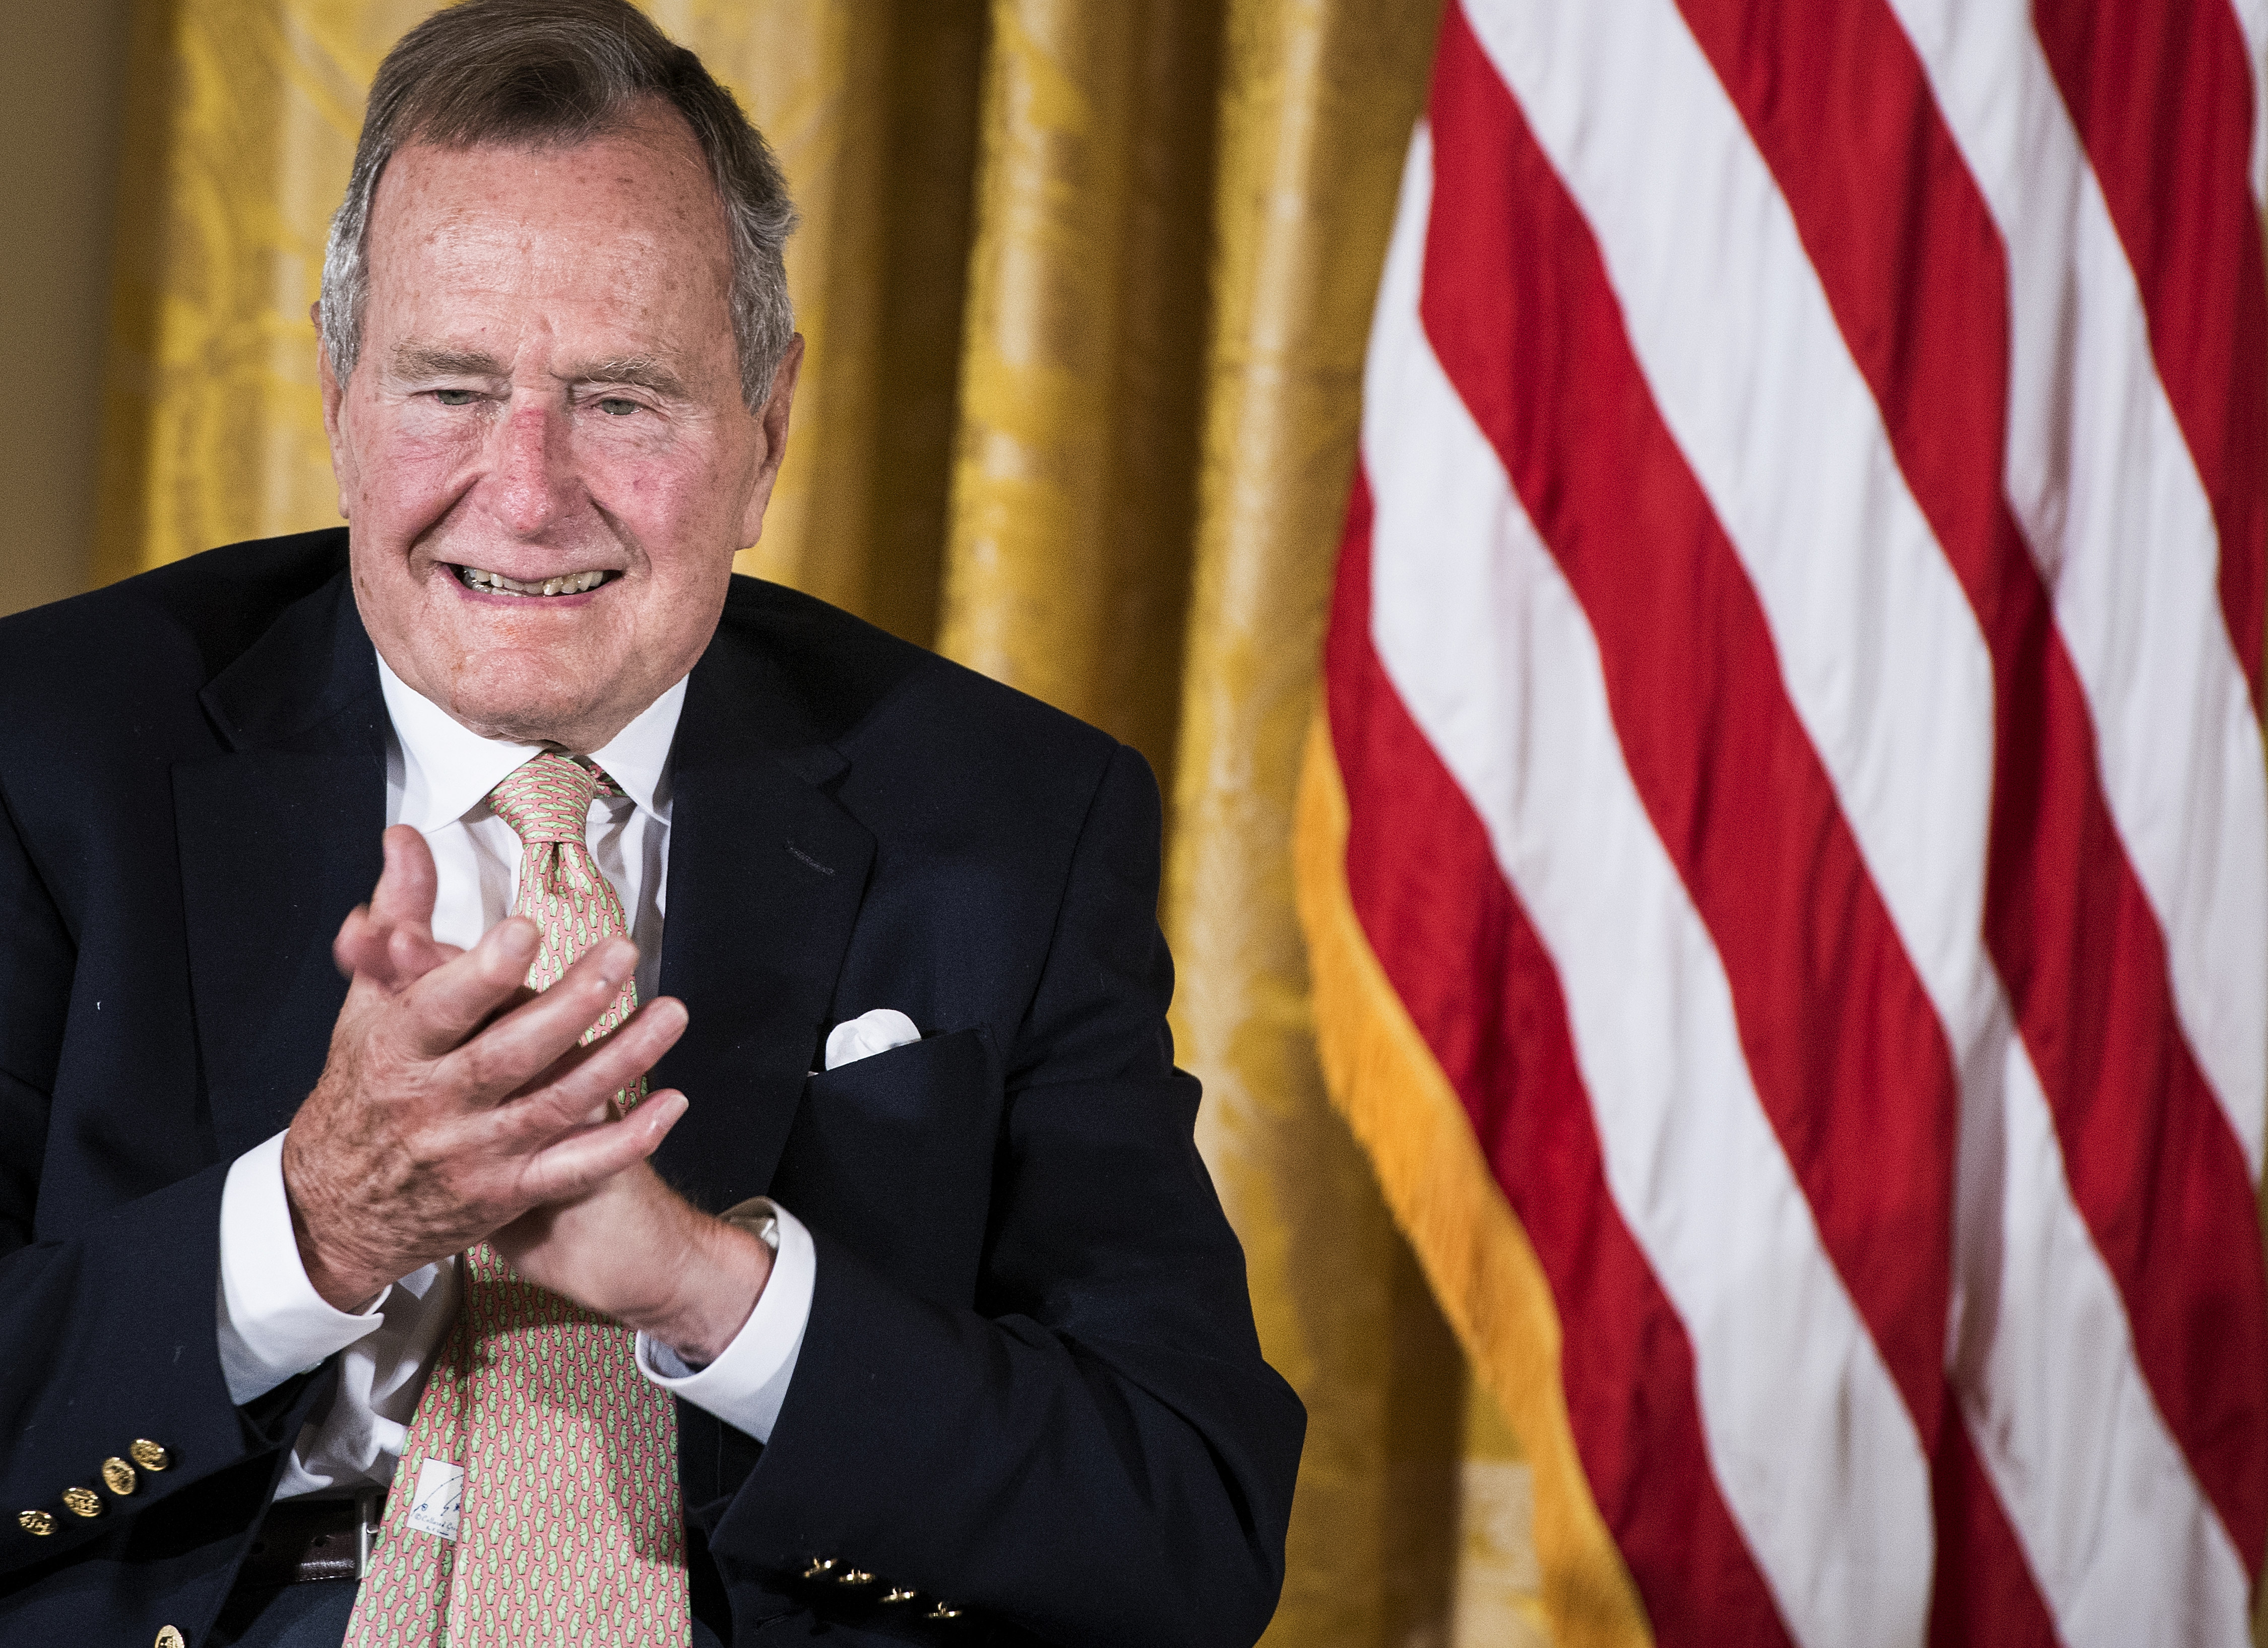 Former US President George H. W. Bush applauds during an event in the East Room of the White House July 15, 2013 in Washington, DC.